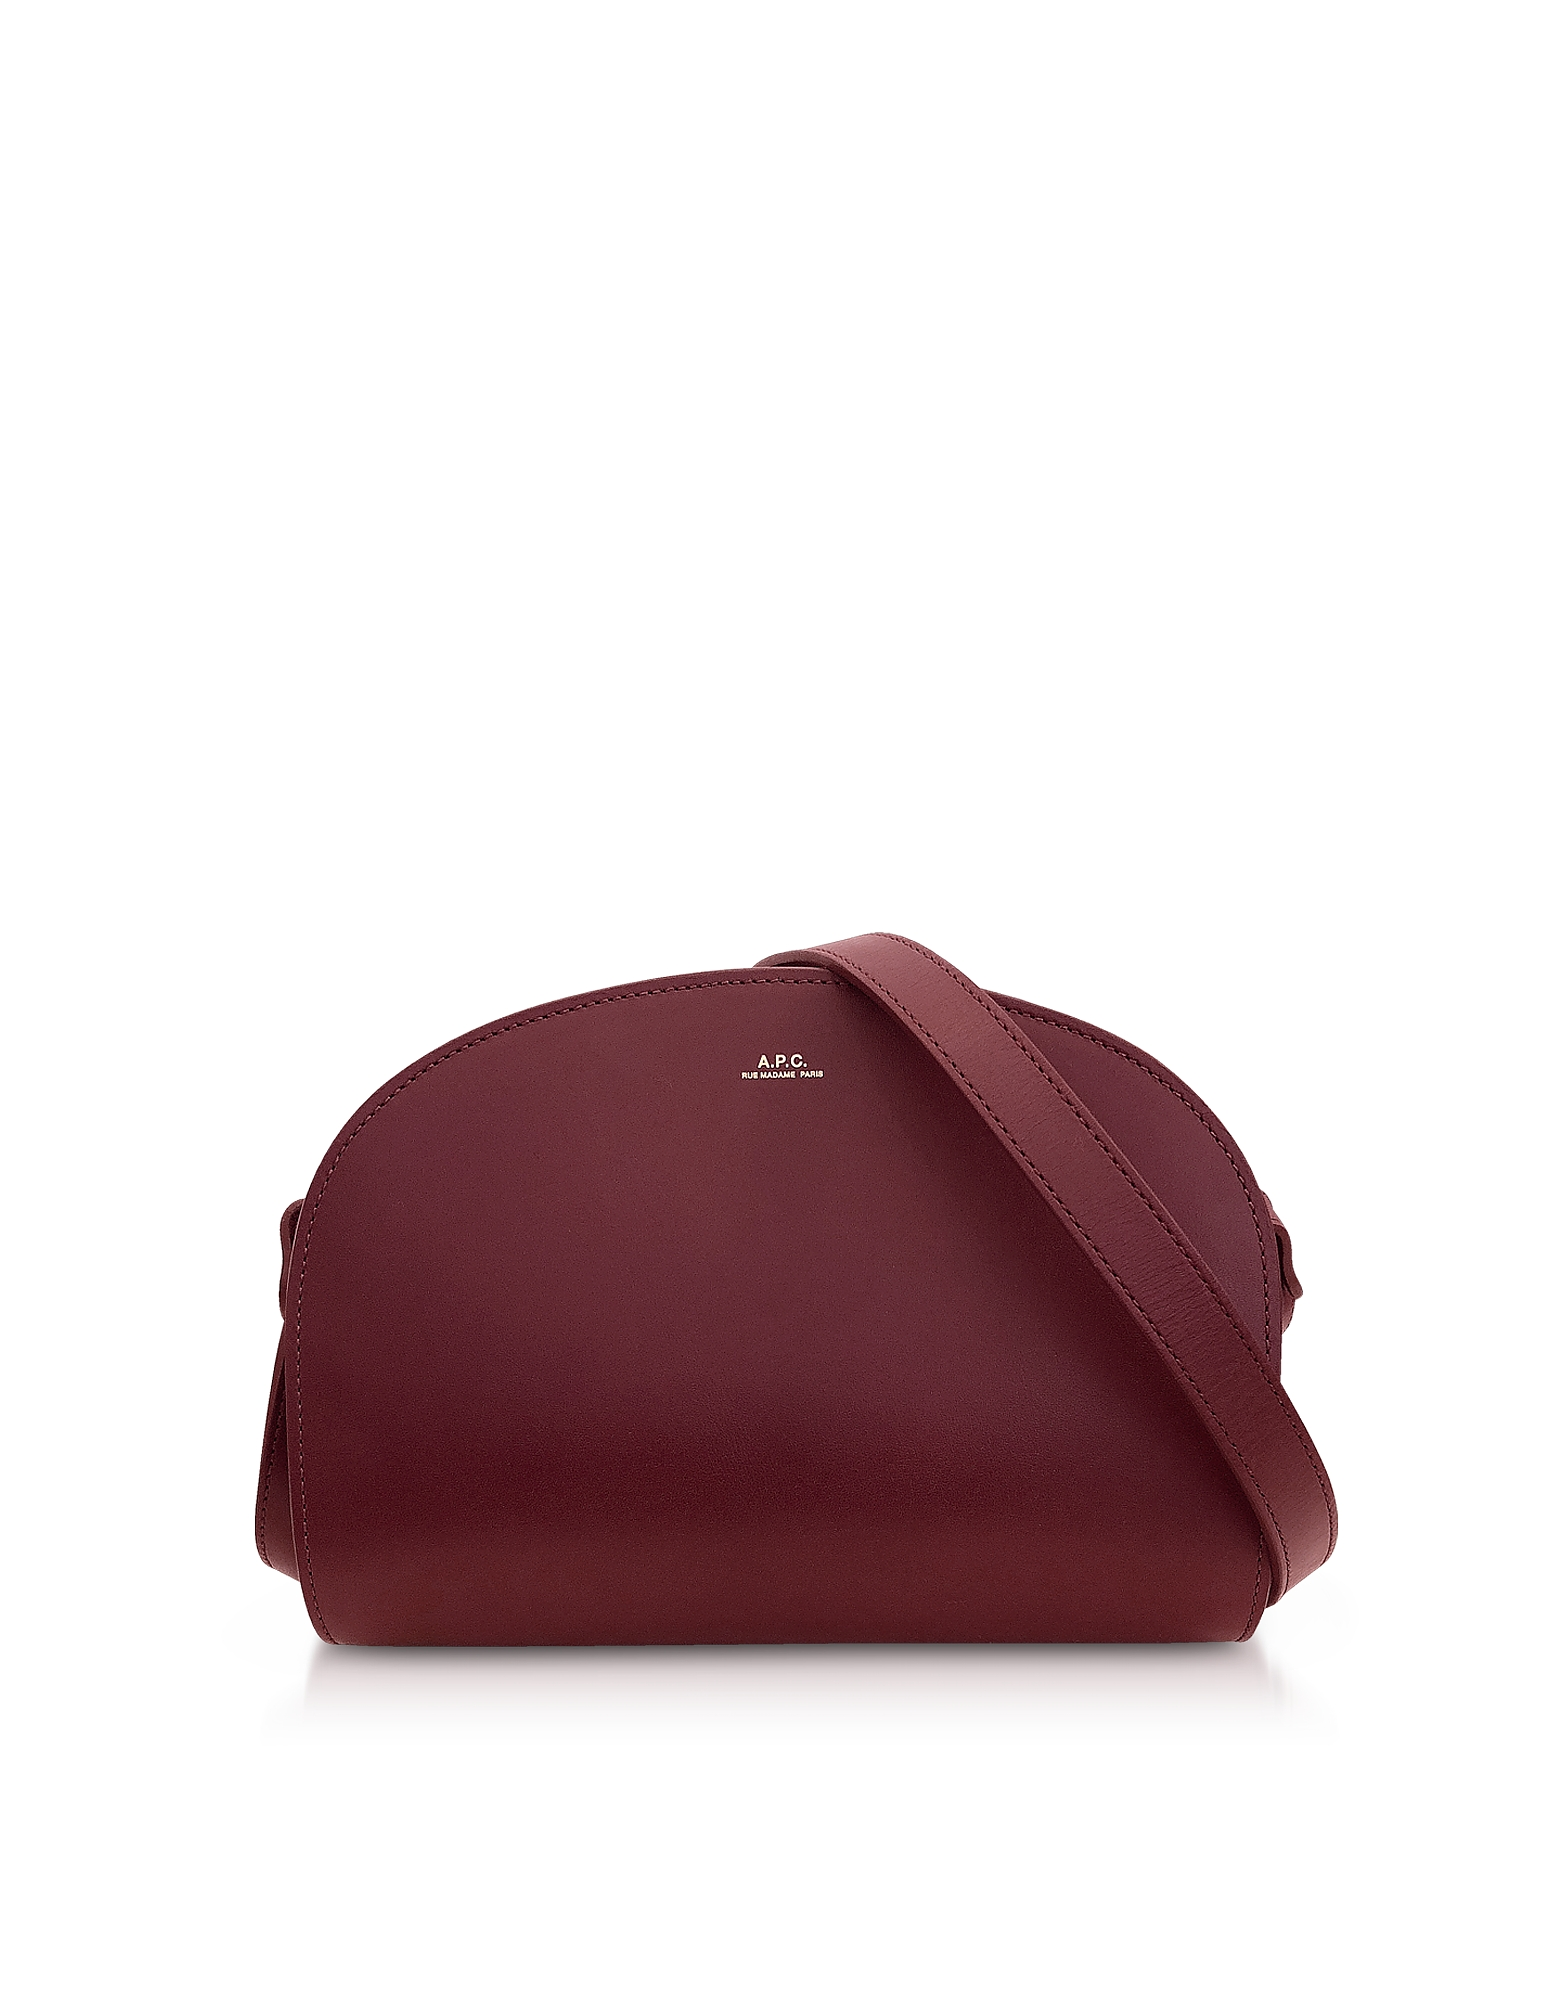 A.P.C. Designer Handbags, Wine Half Moon Smooth Leather Crossbody Bag